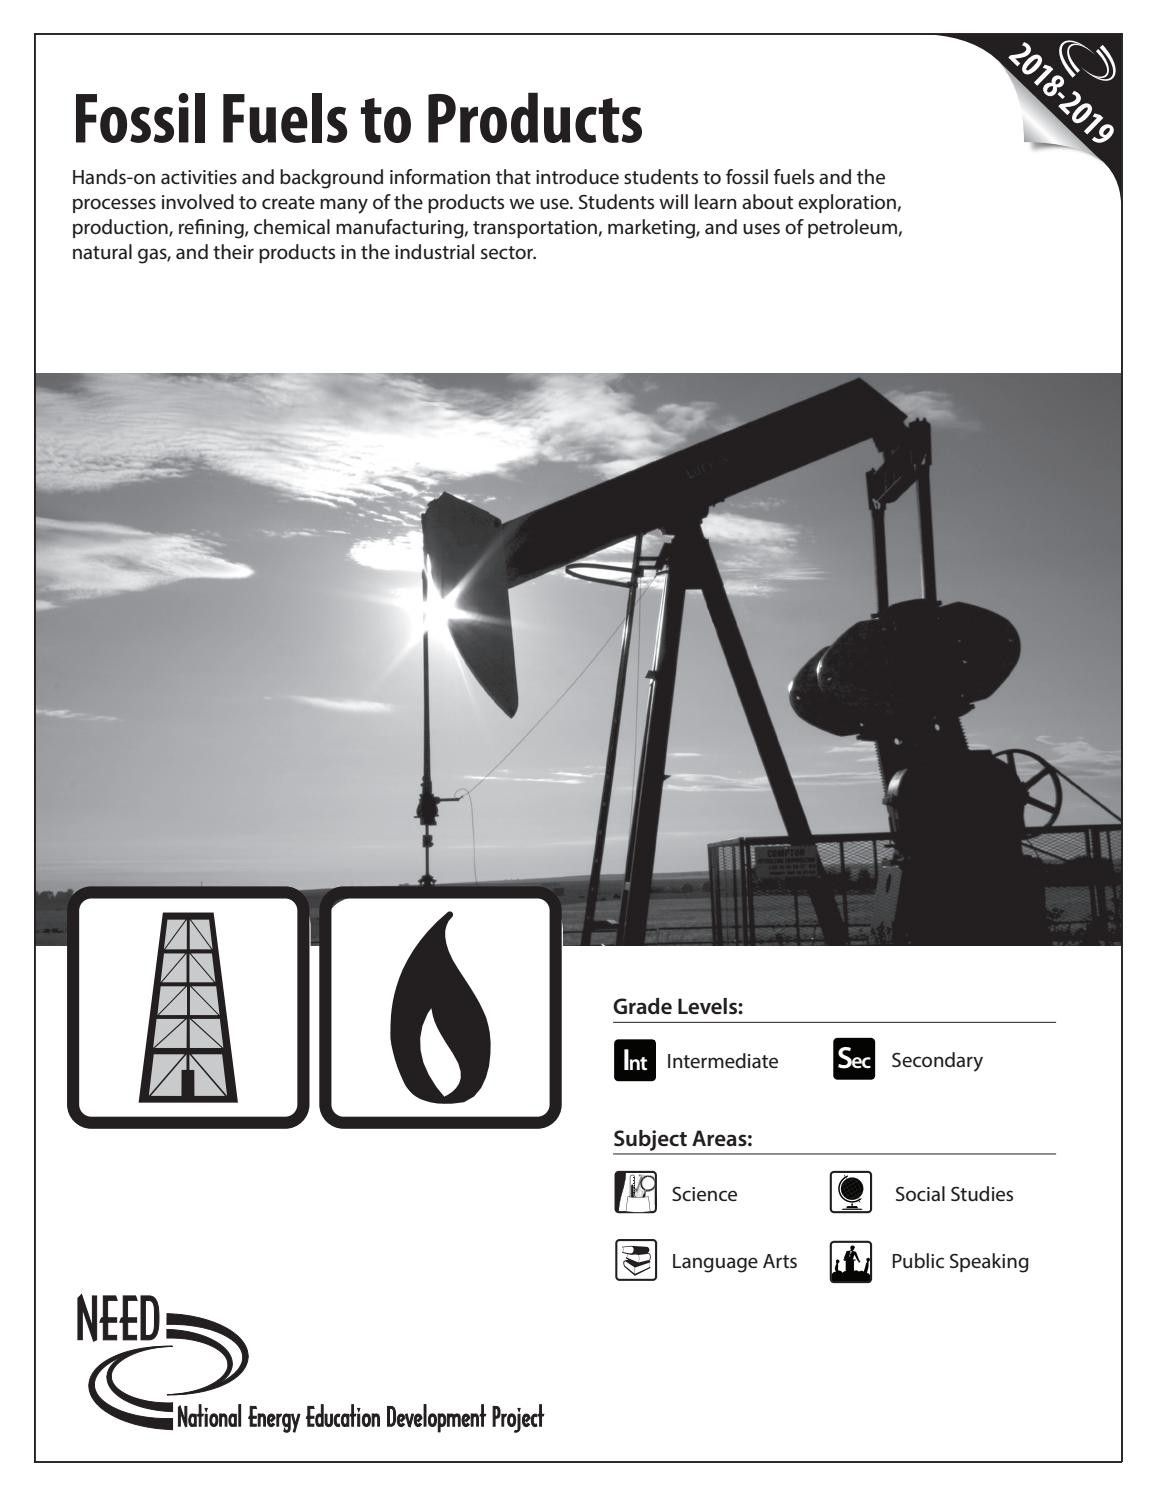 Fossil Fuels Worksheet Middle School Fossil Fuels to Products by Need Project issuu